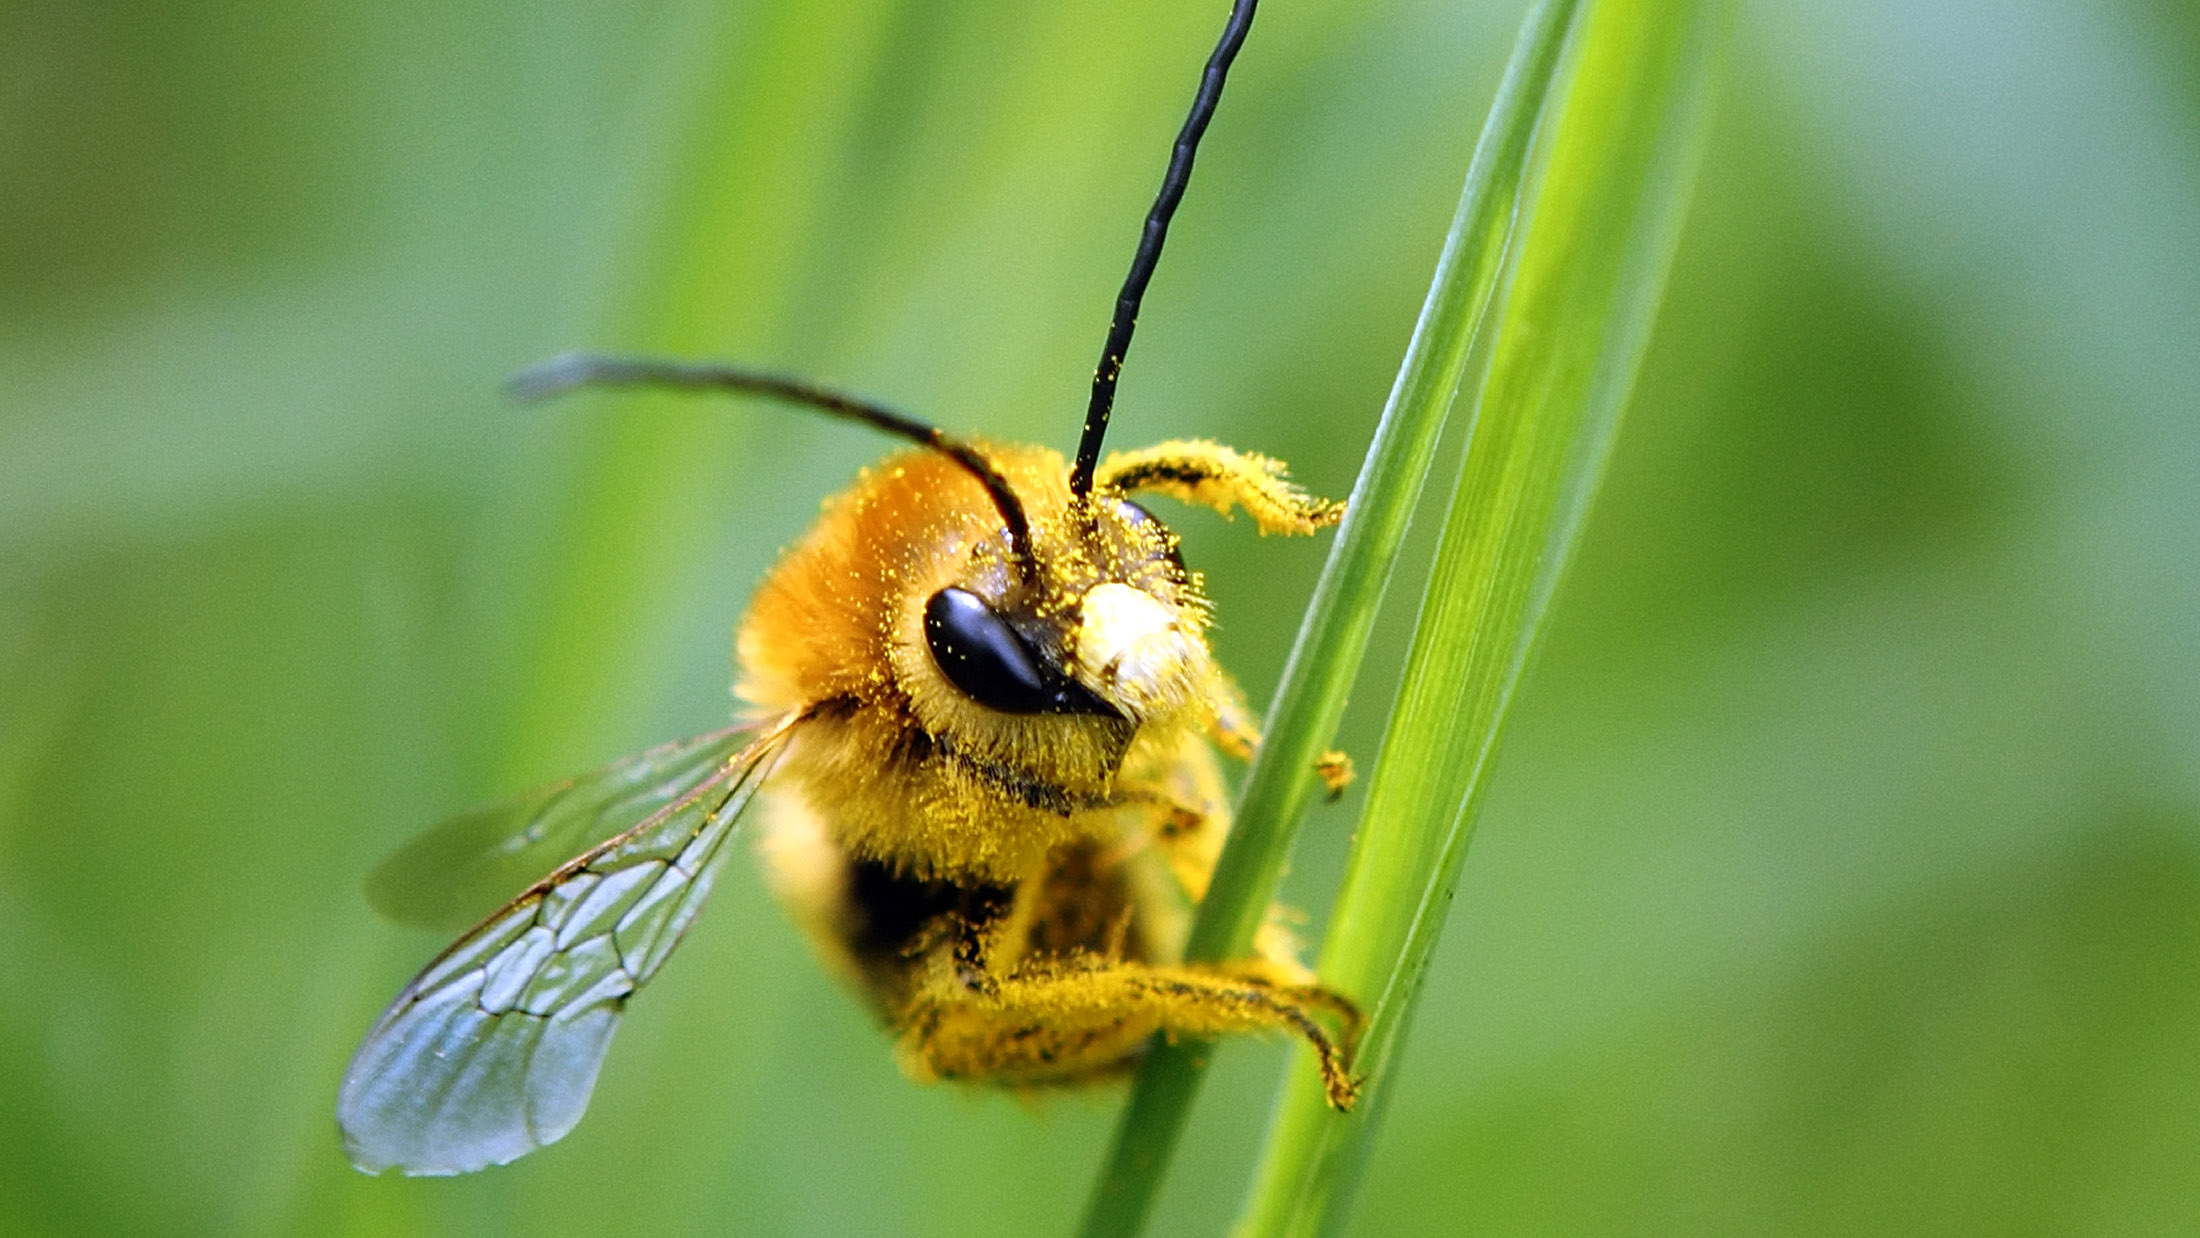 A bee is covered with pollen as it sits on a blade of grass on a lawn in Klosterneuburg April 29, 2013. The European Commission said on Monday it would go ahead and impose a temporary ban on three of the world's most widely used pesticides because of fears they harm bees, despite EU governments failing to agree on the issue. In a vote on Monday, EU officials could not decide whether to impose a two-year ban - with some exceptions - on a class of pesticides known as neonicotinoids, produced mainly by Germany's Bayer and Switzerland's Syngenta. The Commission proposed the ban in January after EU scientists said the chemicals posed an acute risk to honeybees, which pollinate many of the crops grown commercially in Europe. REUTERS/Heinz-Peter Bader